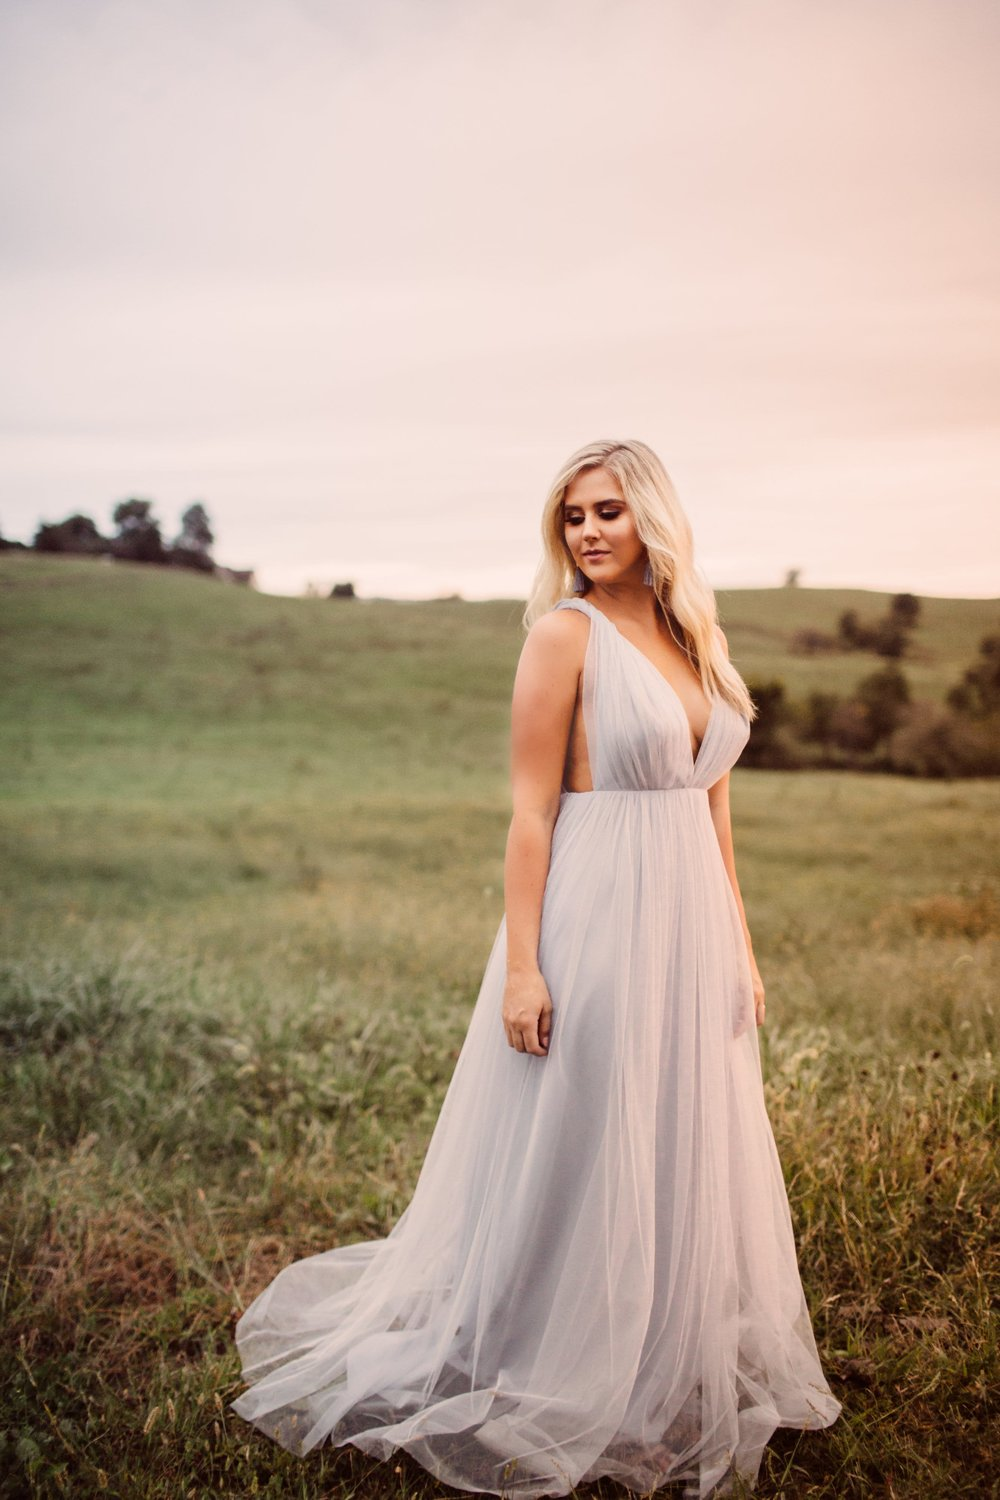 Deep V Michelle dress by Joanna August featured in engagement shoot